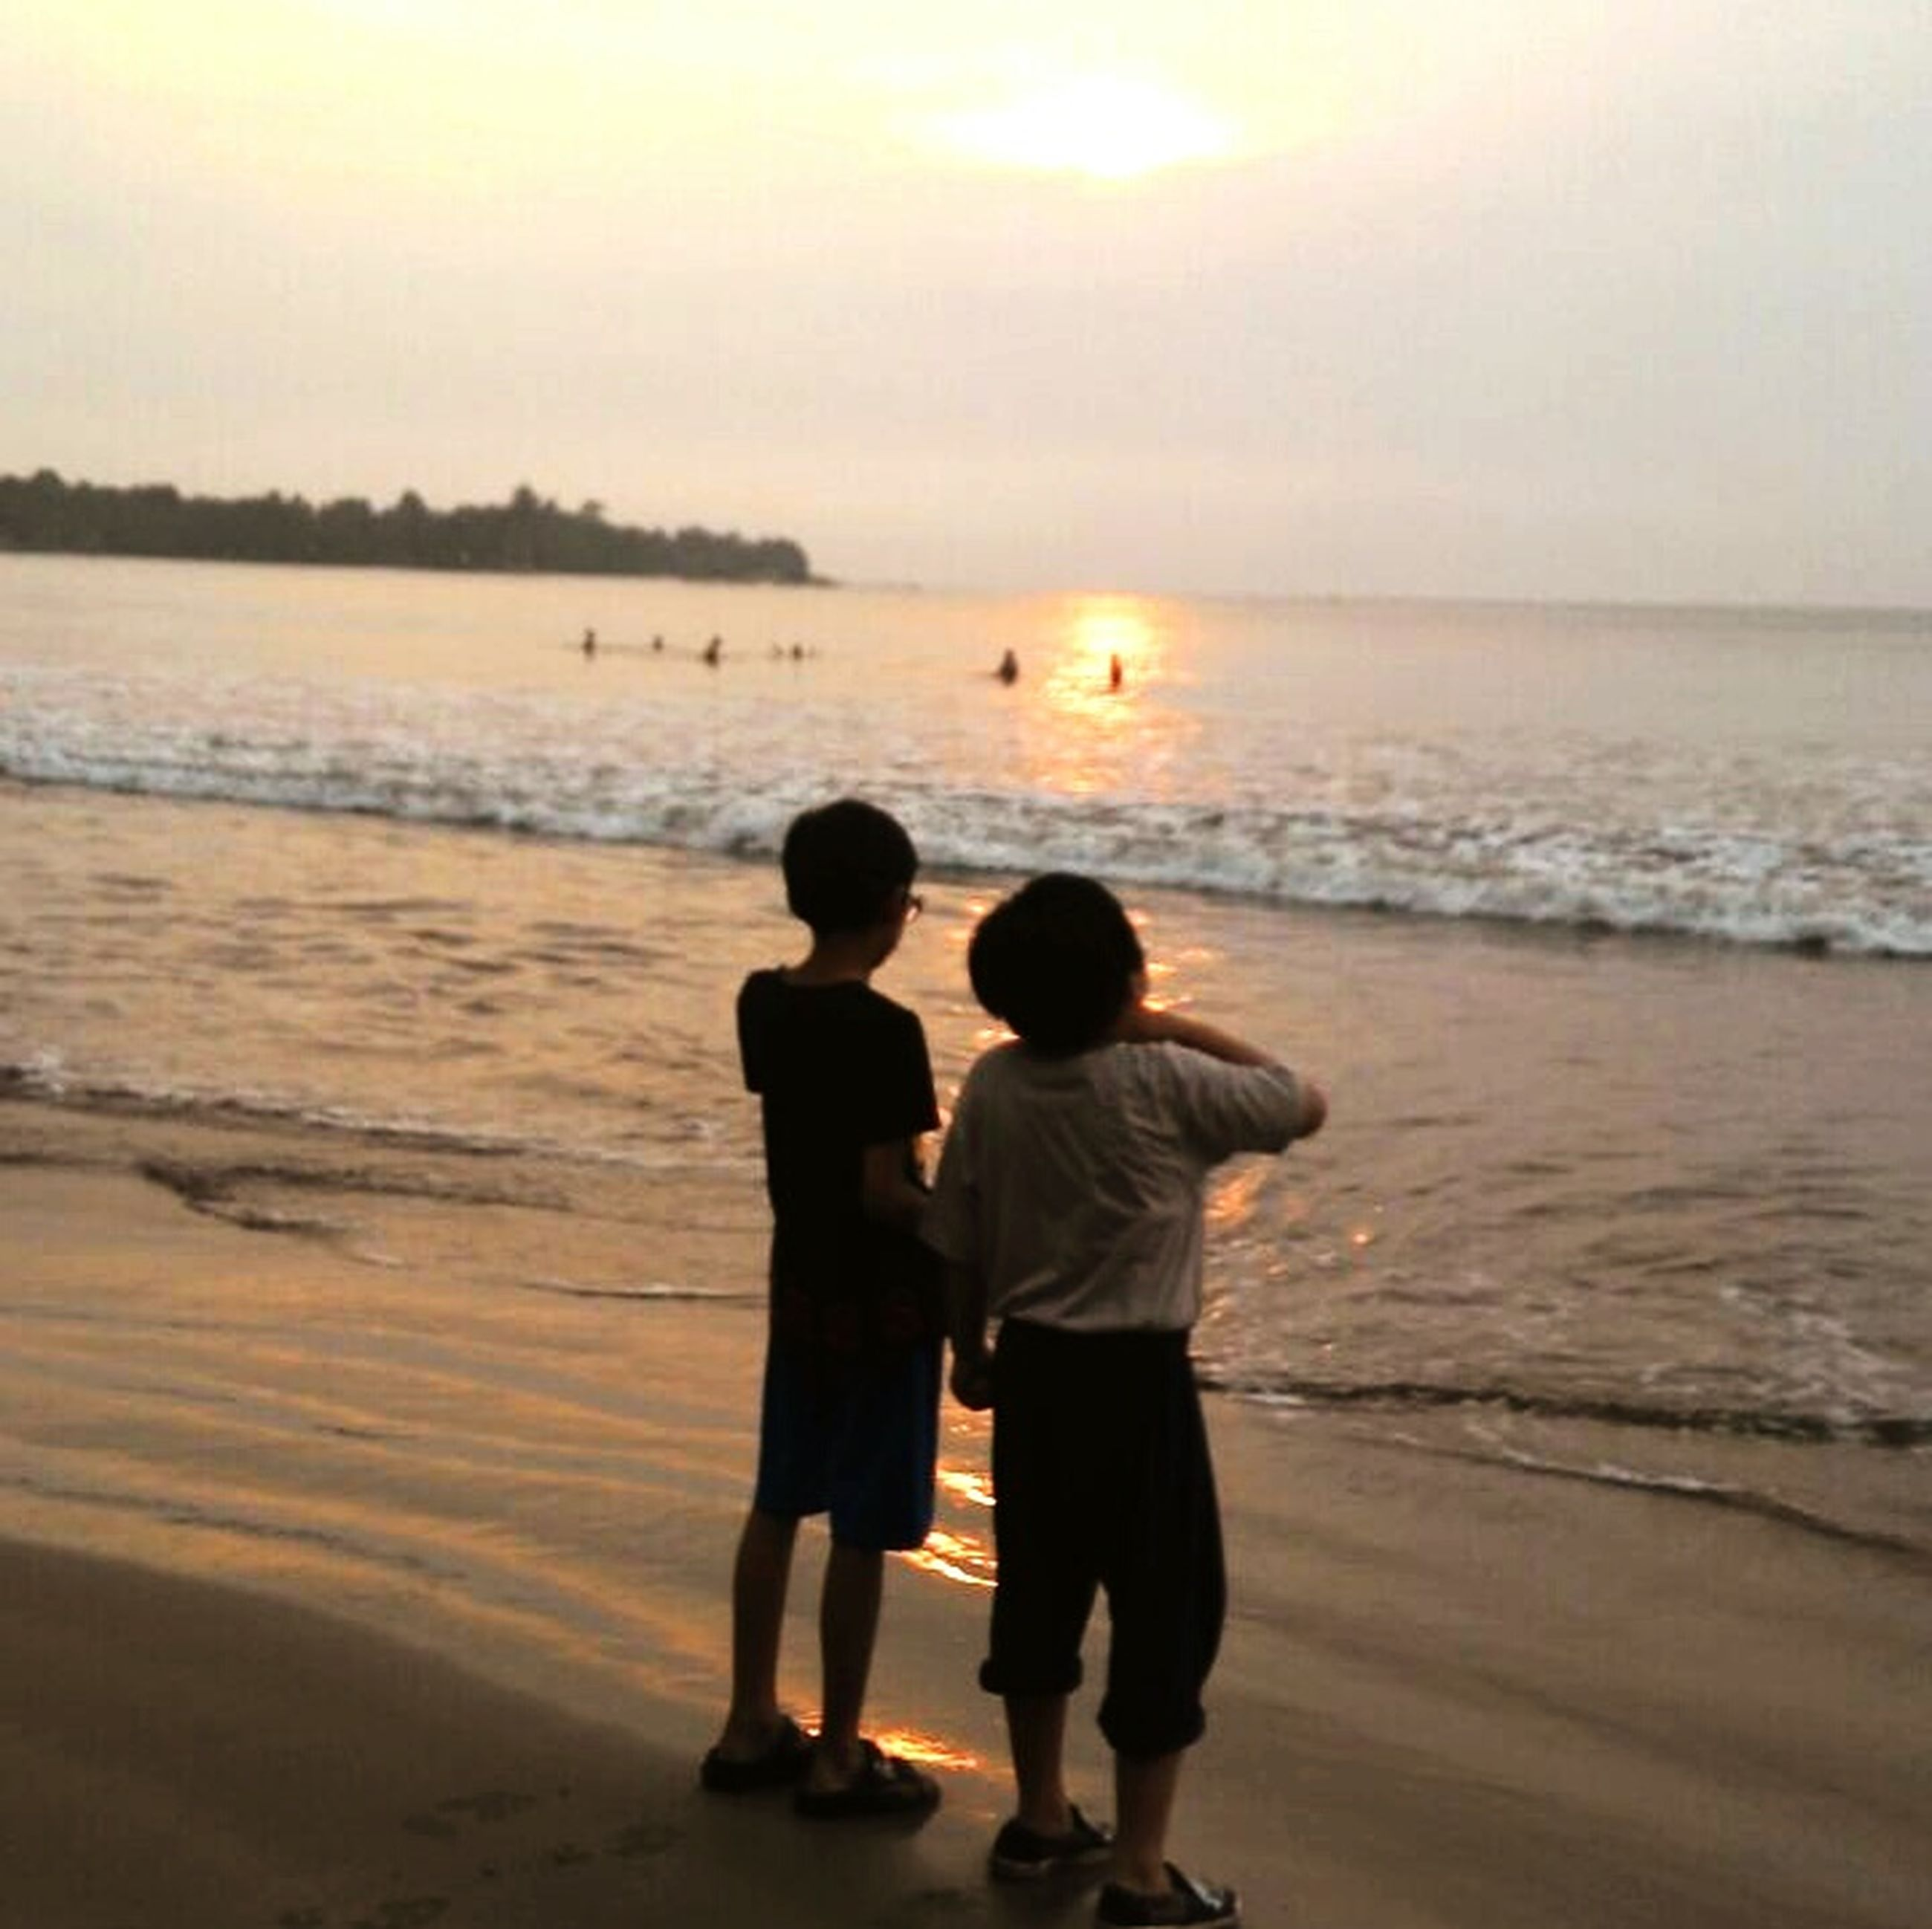 sea, beach, horizon over water, shore, water, sand, sunset, leisure activity, rear view, lifestyles, standing, vacations, scenics, beauty in nature, togetherness, full length, silhouette, tranquility, tranquil scene